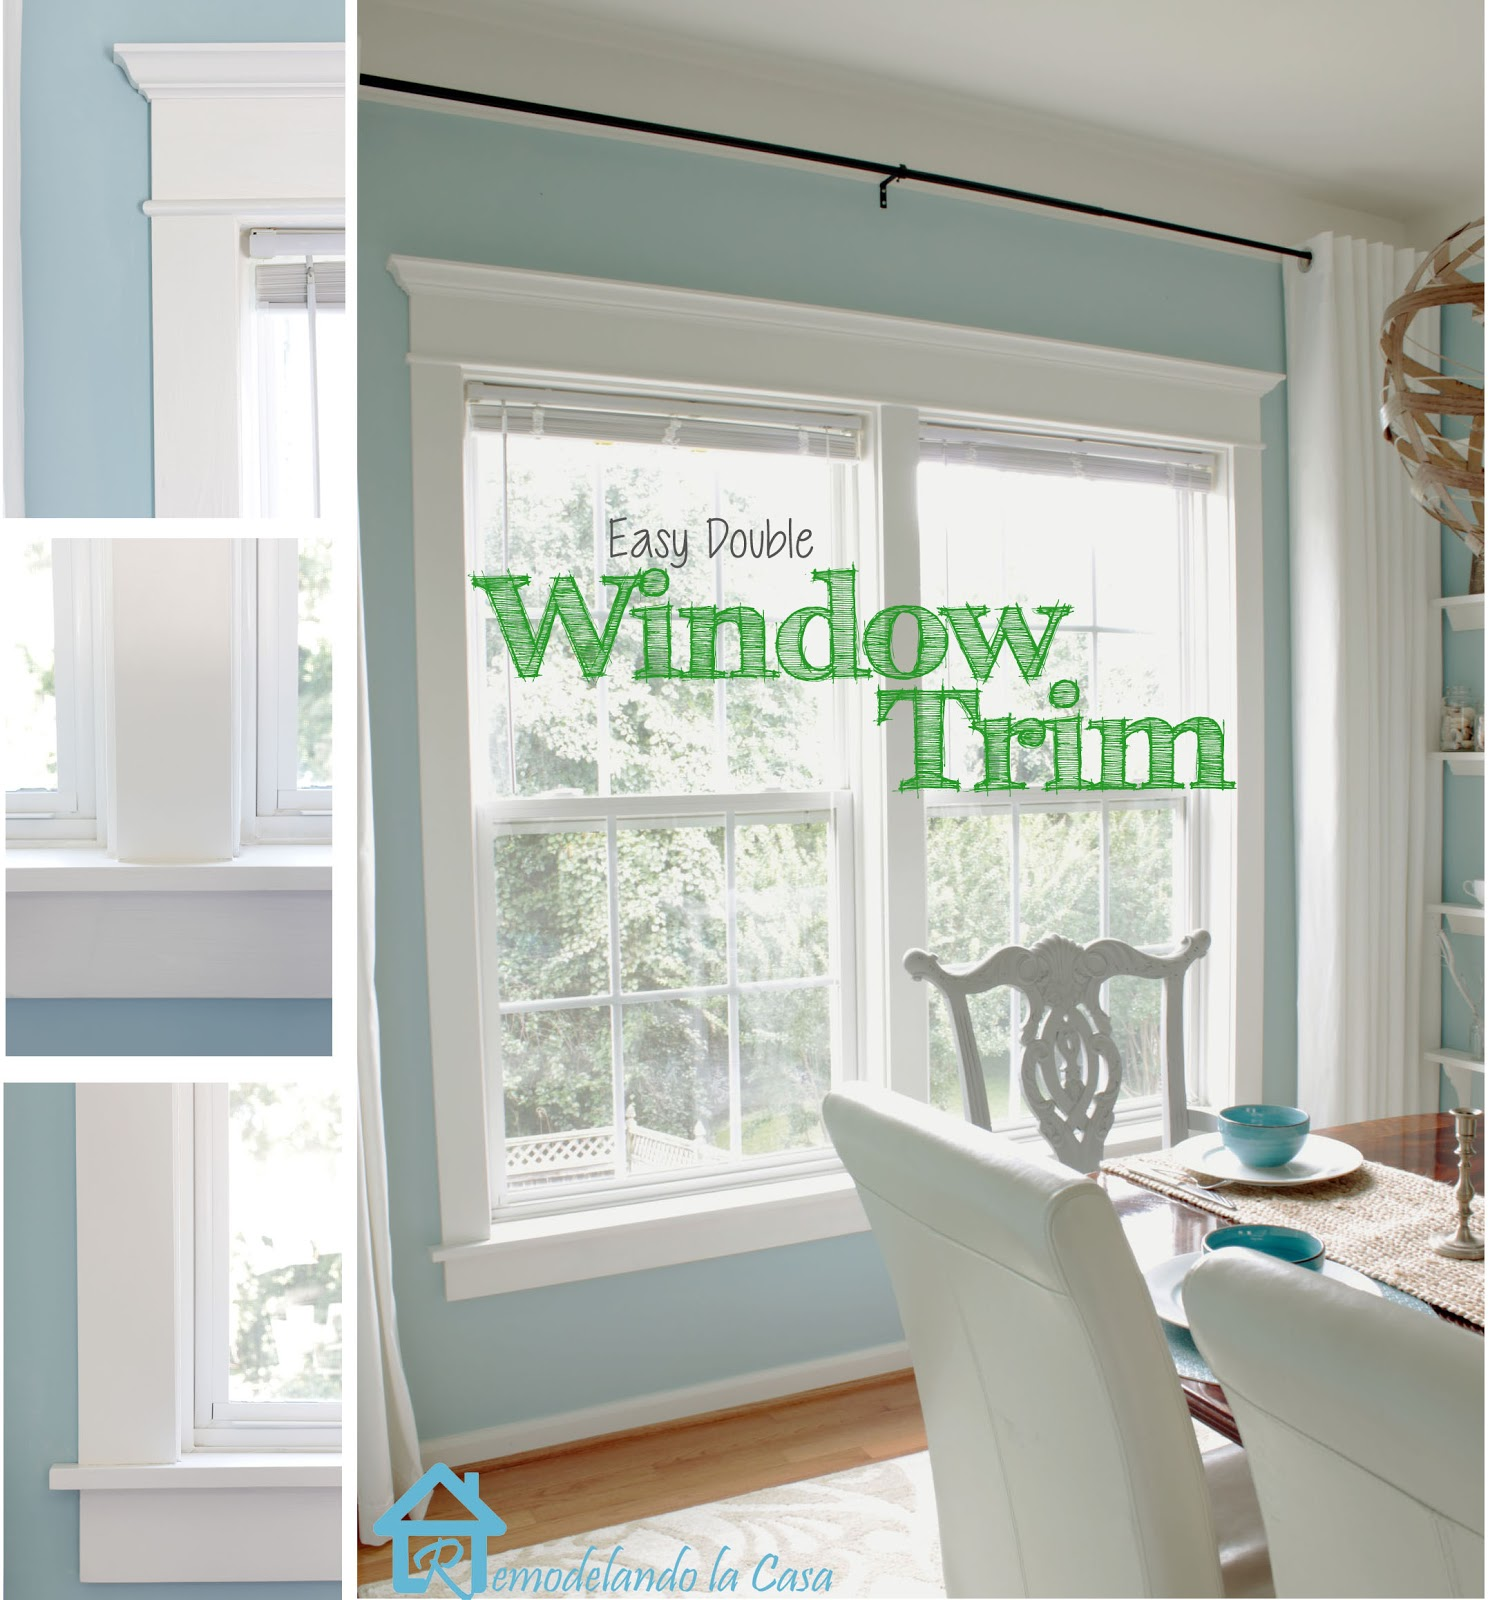 My Dining Room Makeover Was Done A Couple Of Months Ago. It Began With A  Pair Of Painted Chairs And Ended Up With A Whole Room Face Lift. The Window  Trim ...